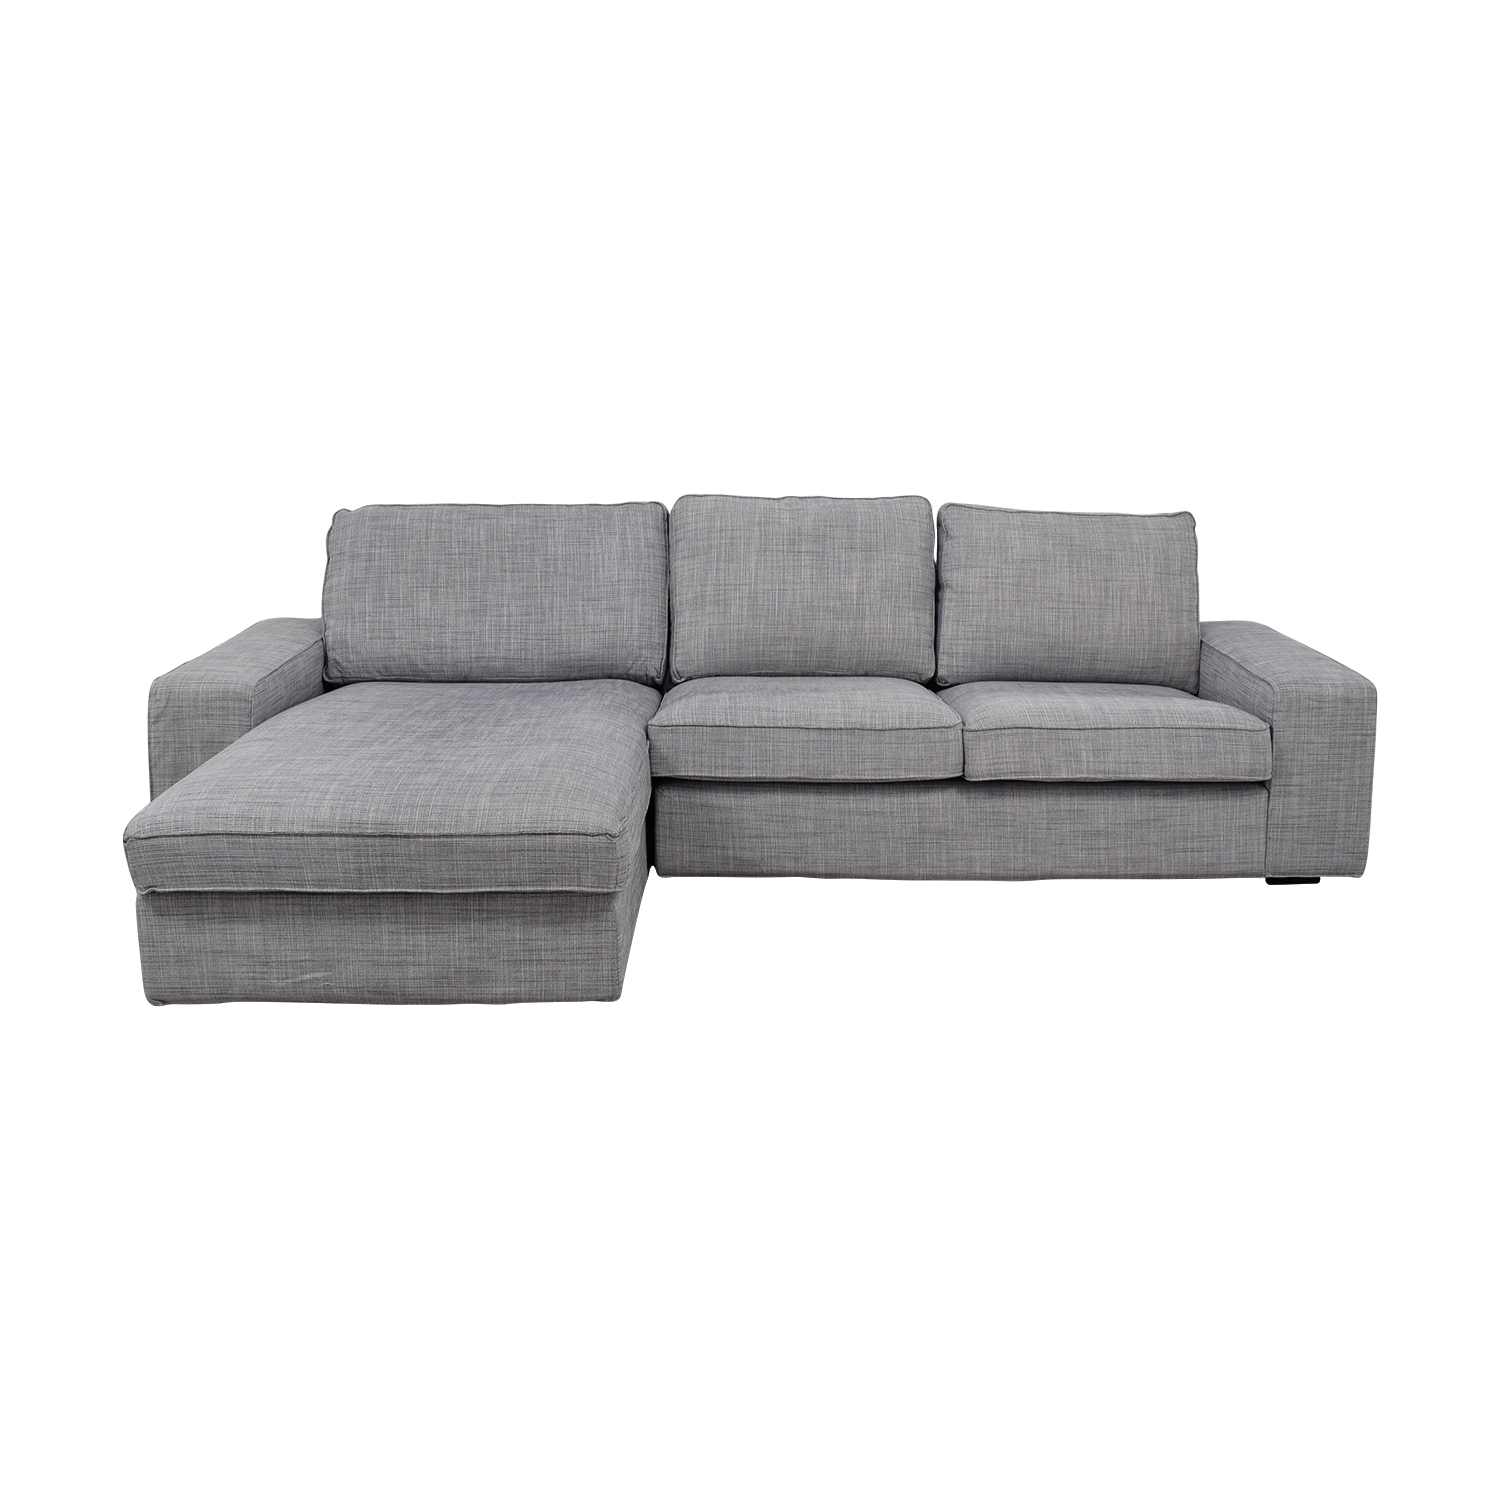 Enjoyable 30 Off Ikea Ikea Light Grey Chaise Sectional Sofas Pabps2019 Chair Design Images Pabps2019Com